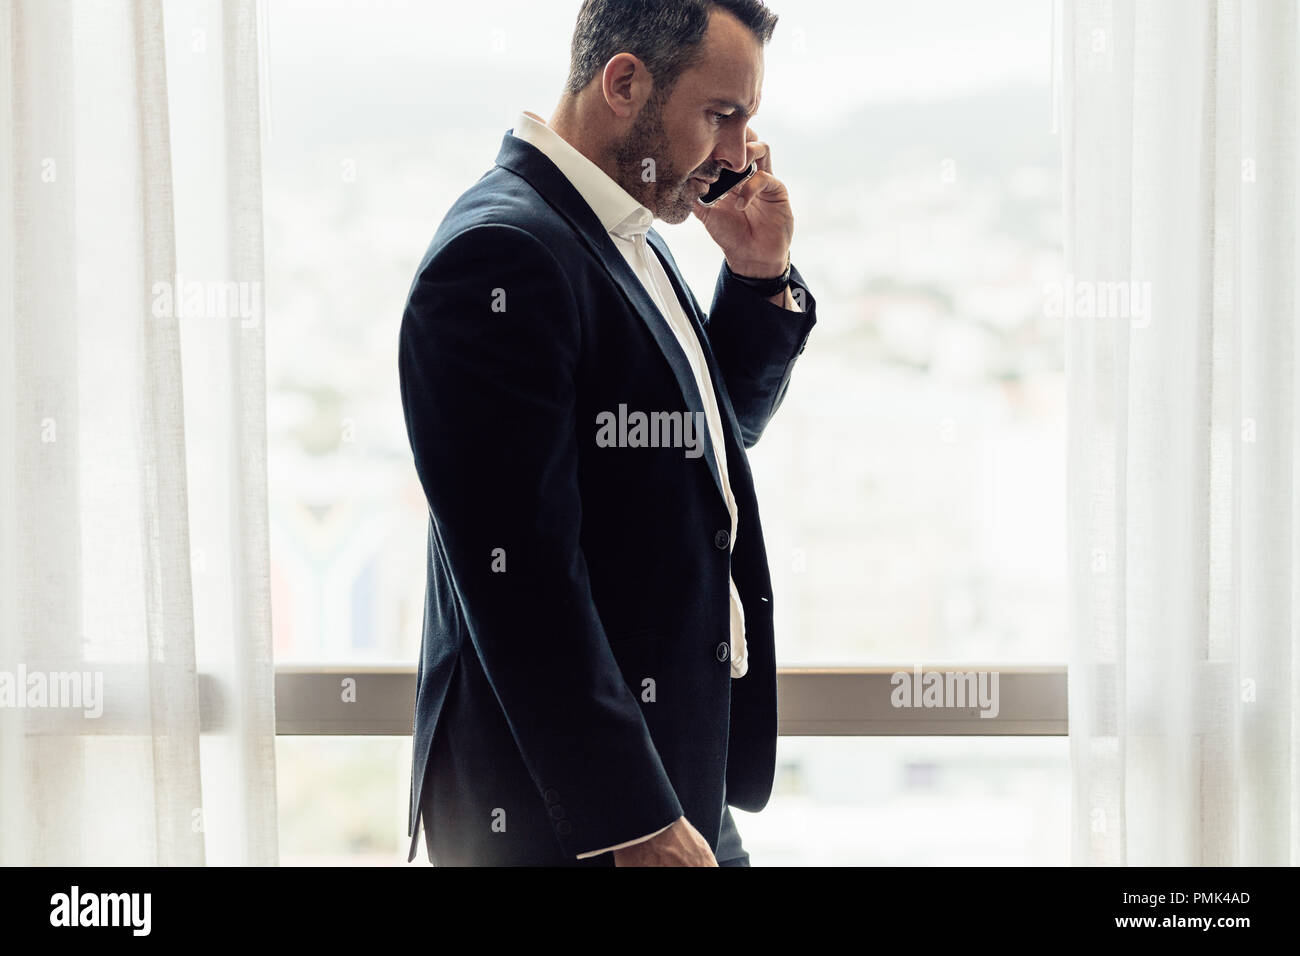 Side view of mature businessman talking on cell phone. Man in hotel room having discussing over phone. - Stock Image